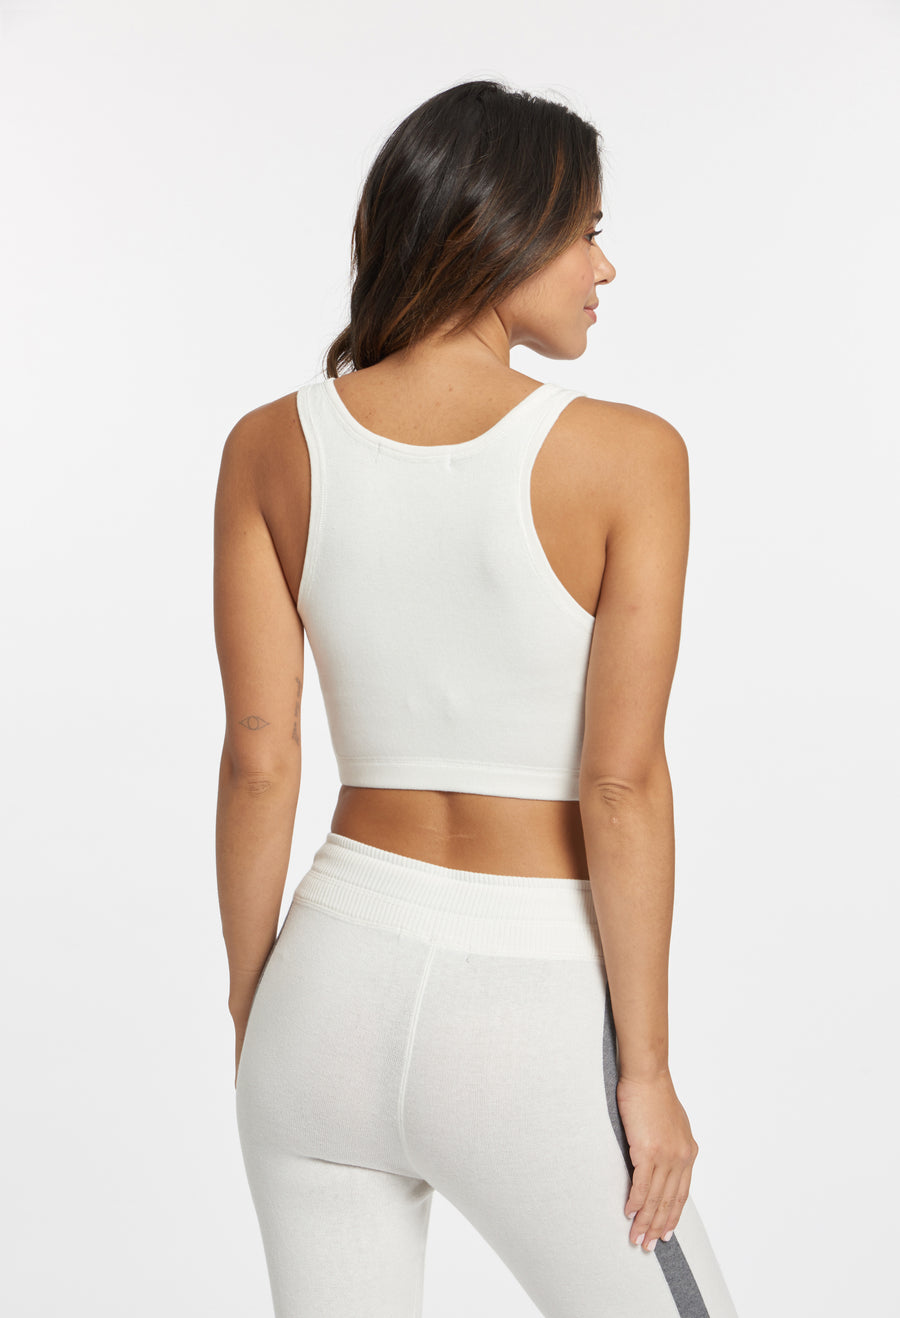 Malibu Sleeveless Crop